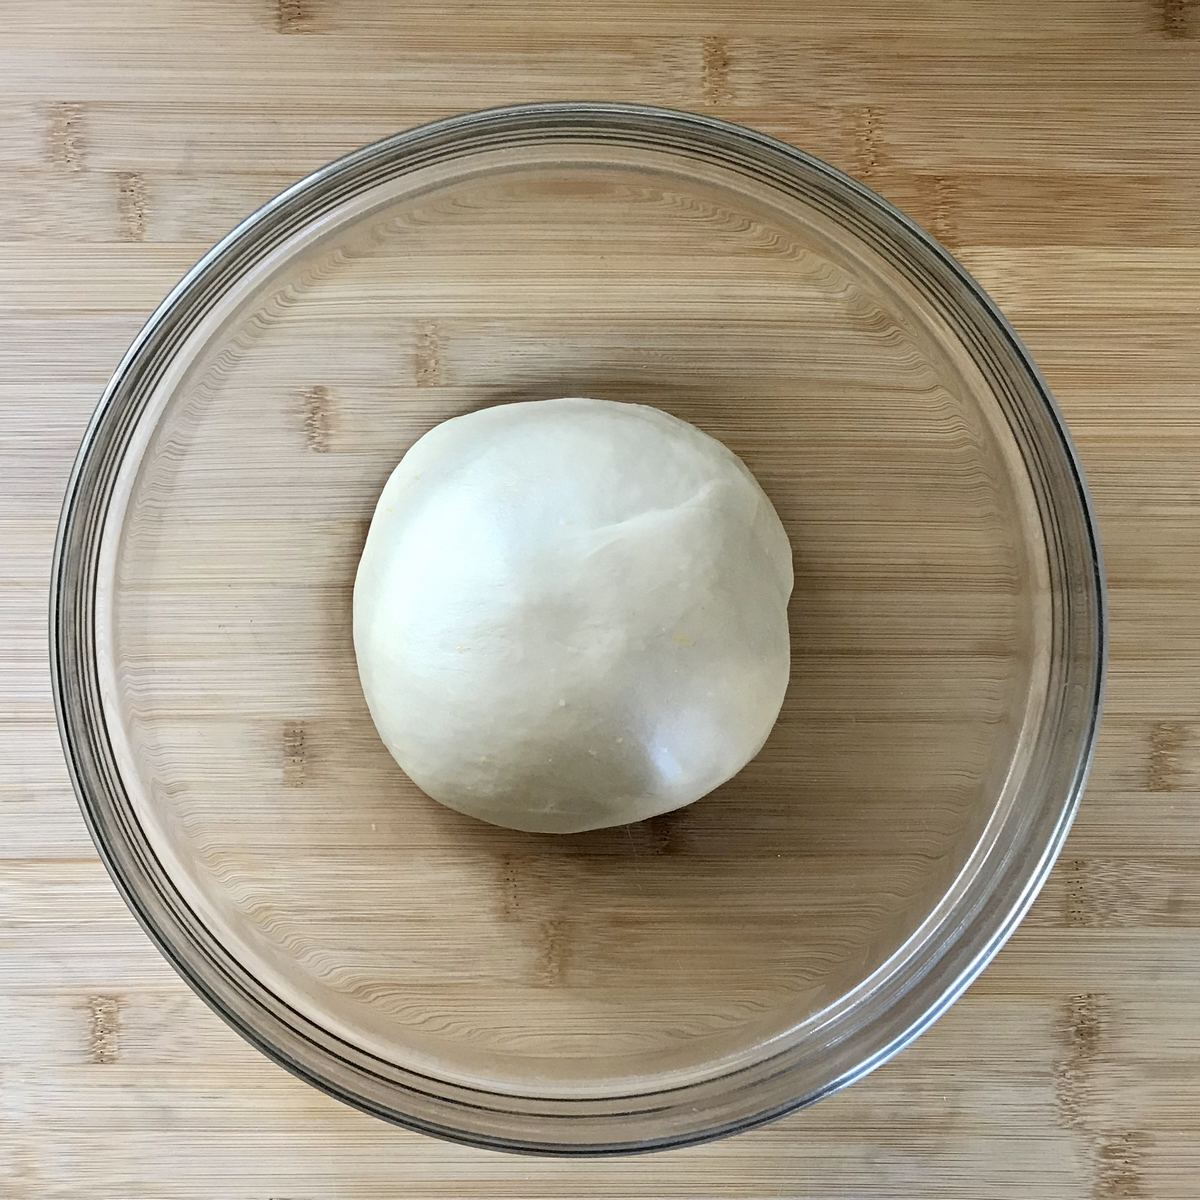 Ball of dough resting in a large bowl.